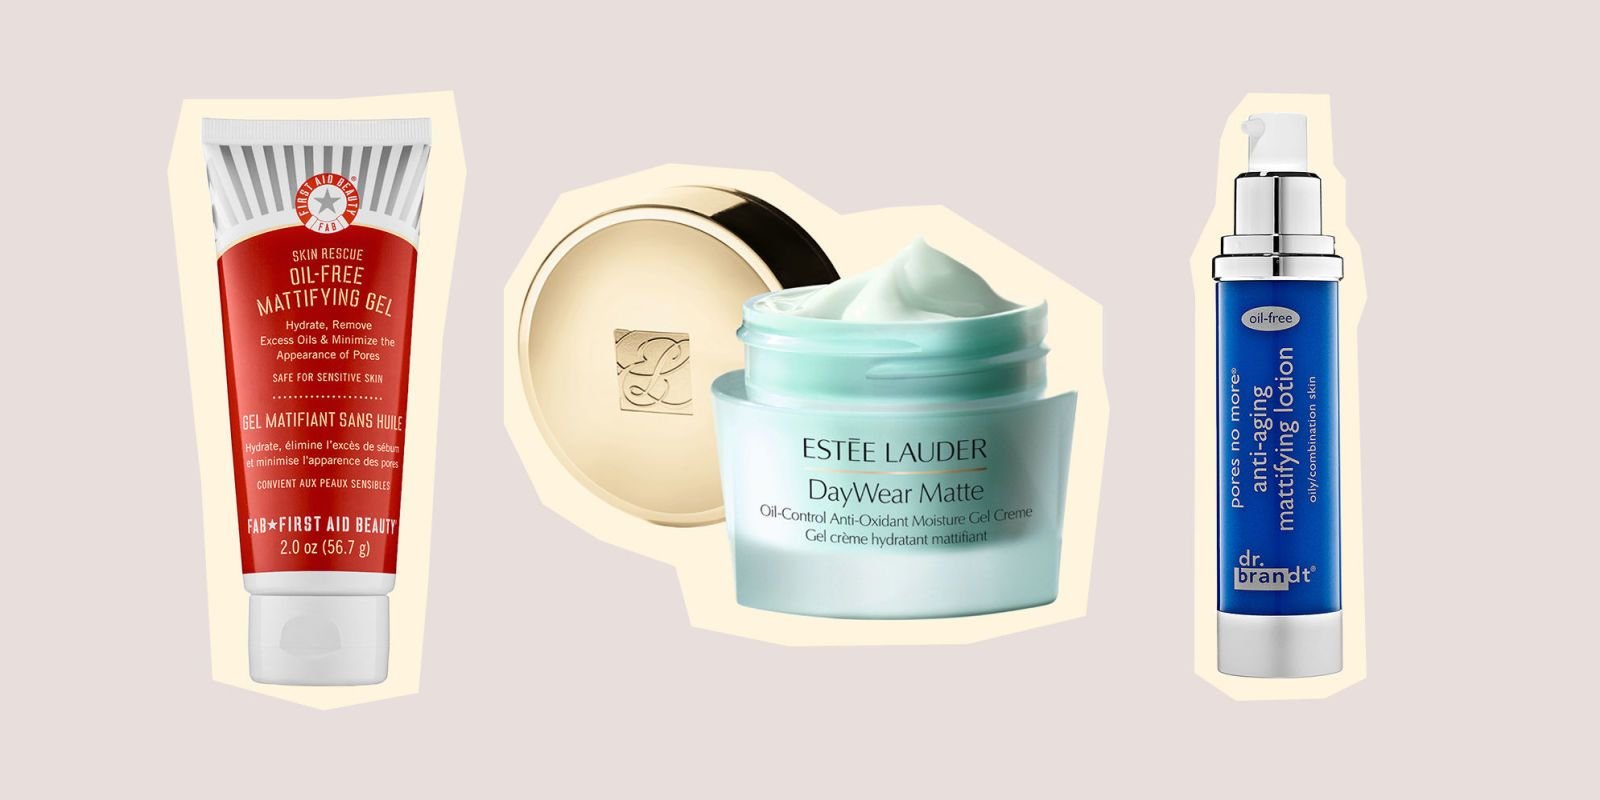 8 Moisturizers That Will Never, Ever Make You Look Shiny